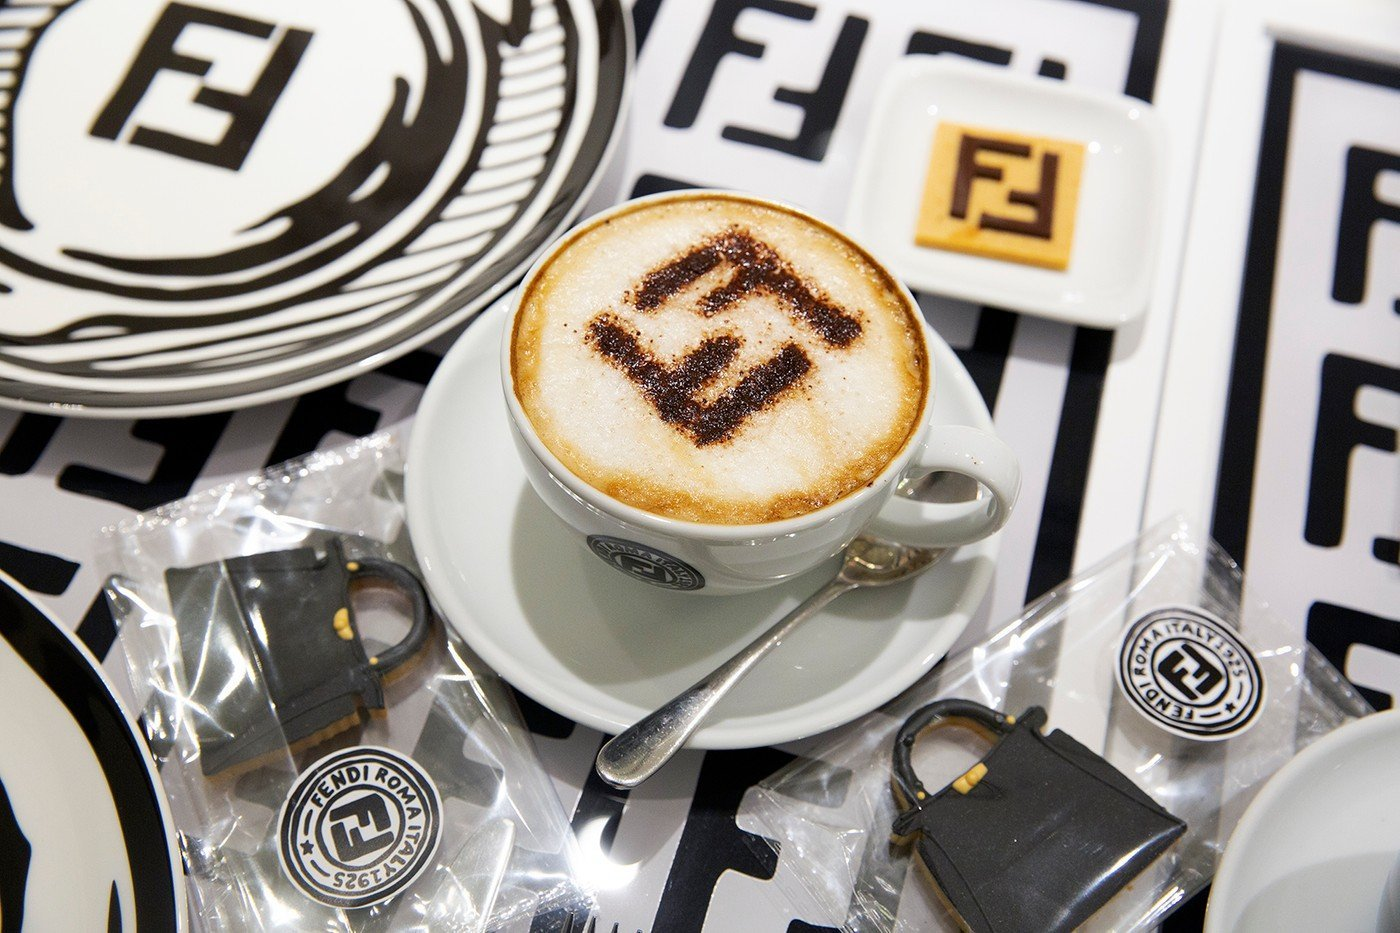 Elizabeths Cake Emporium Collaborates With Fendi